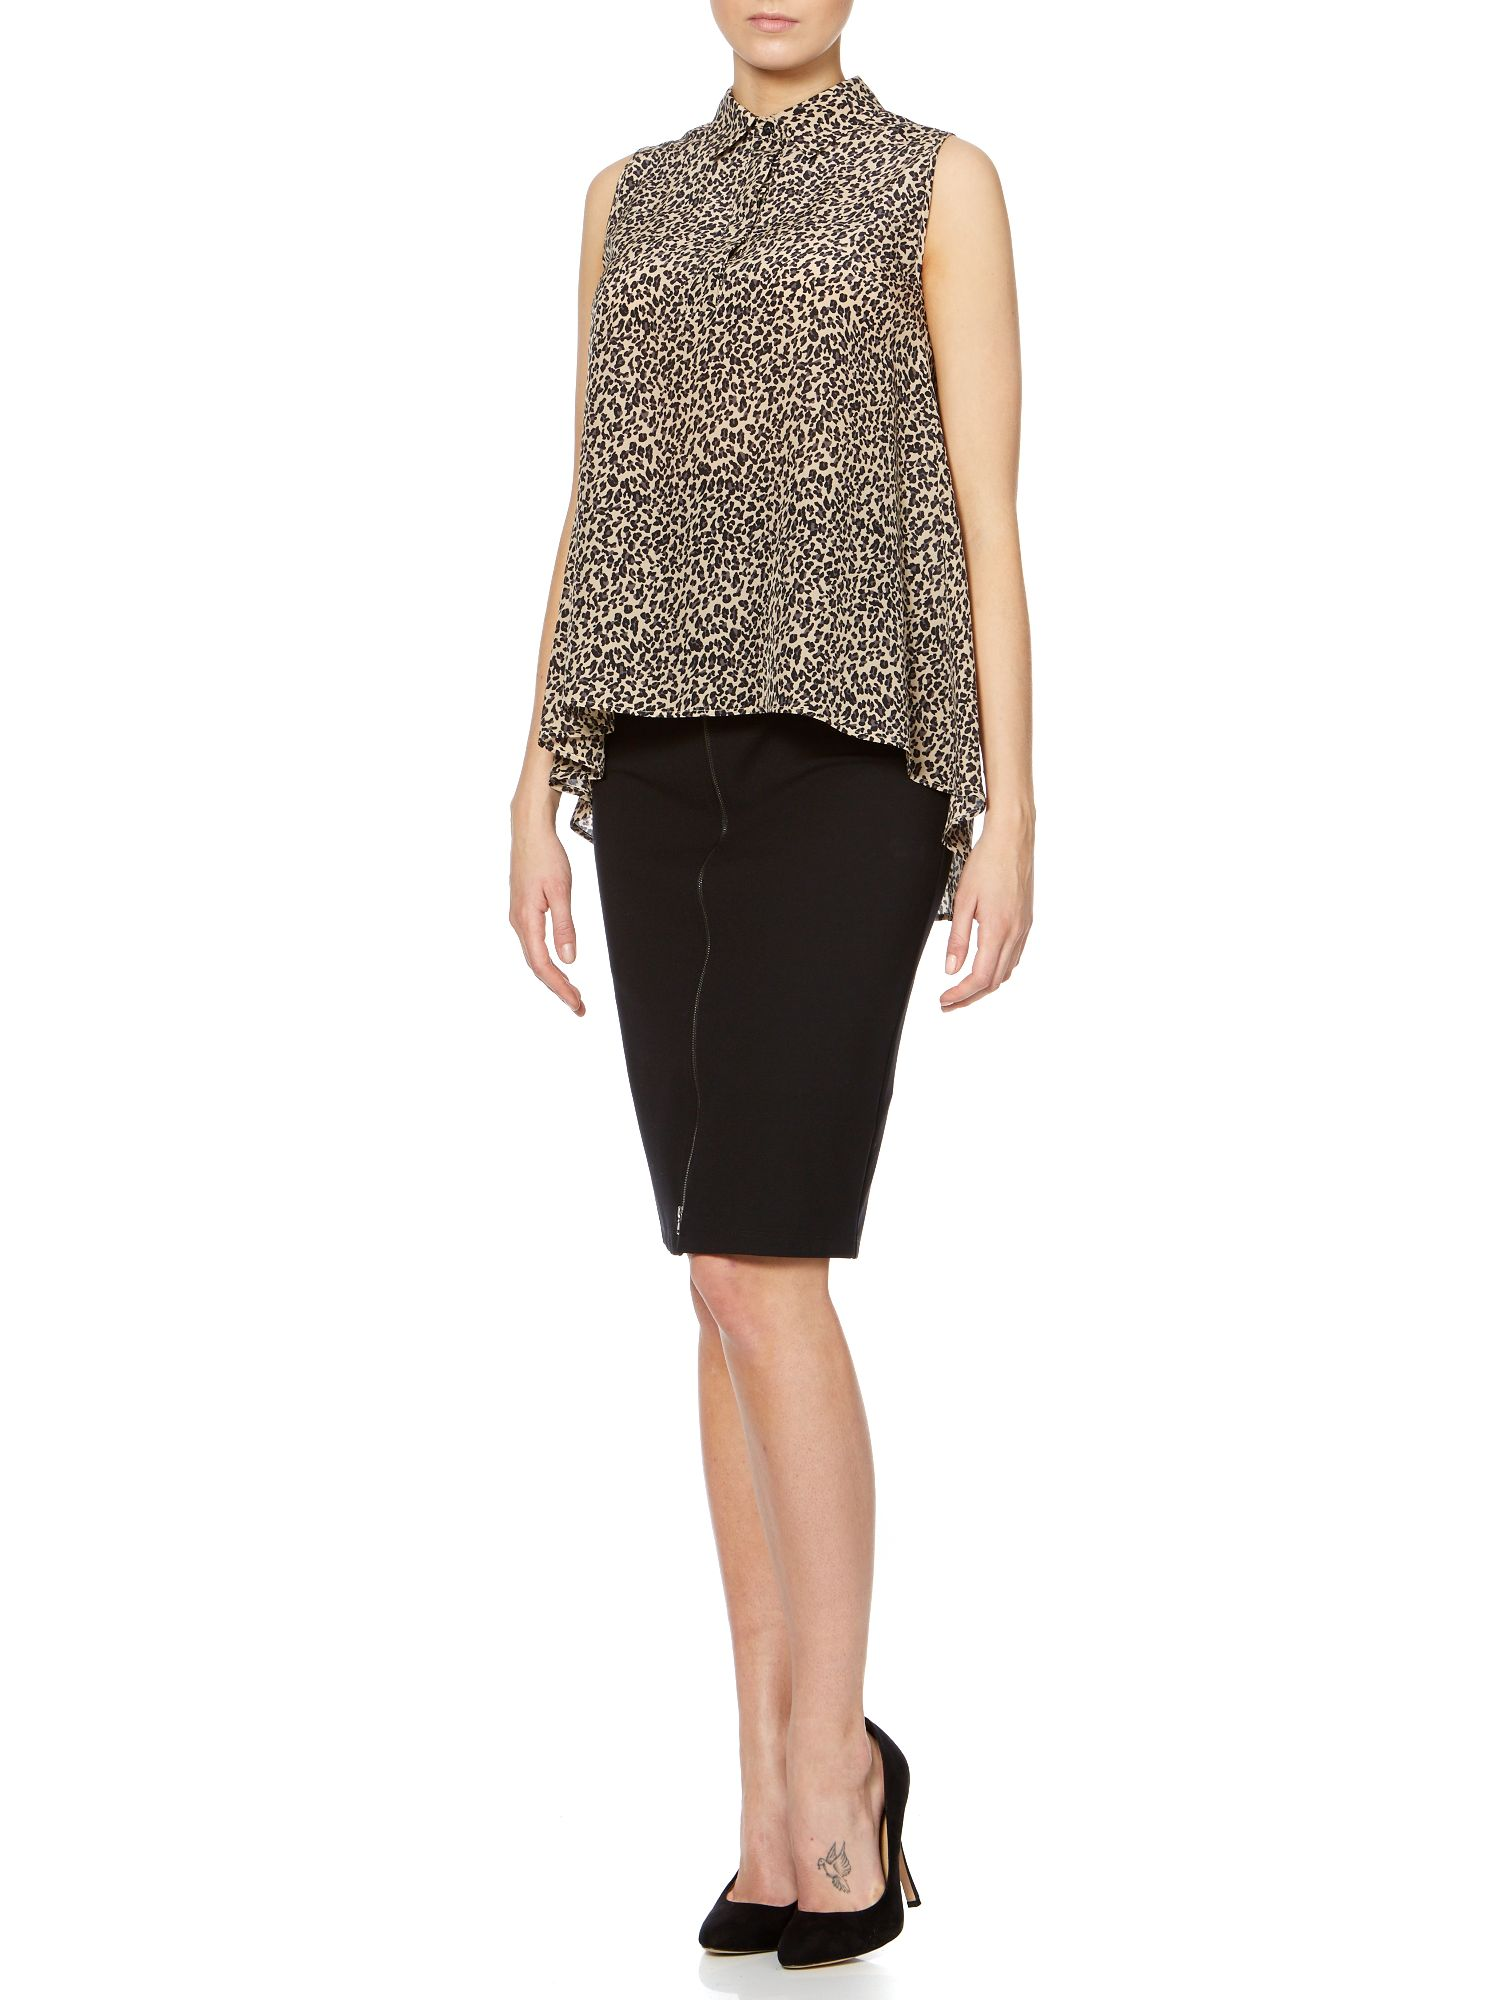 Durata pencil skirt with zip